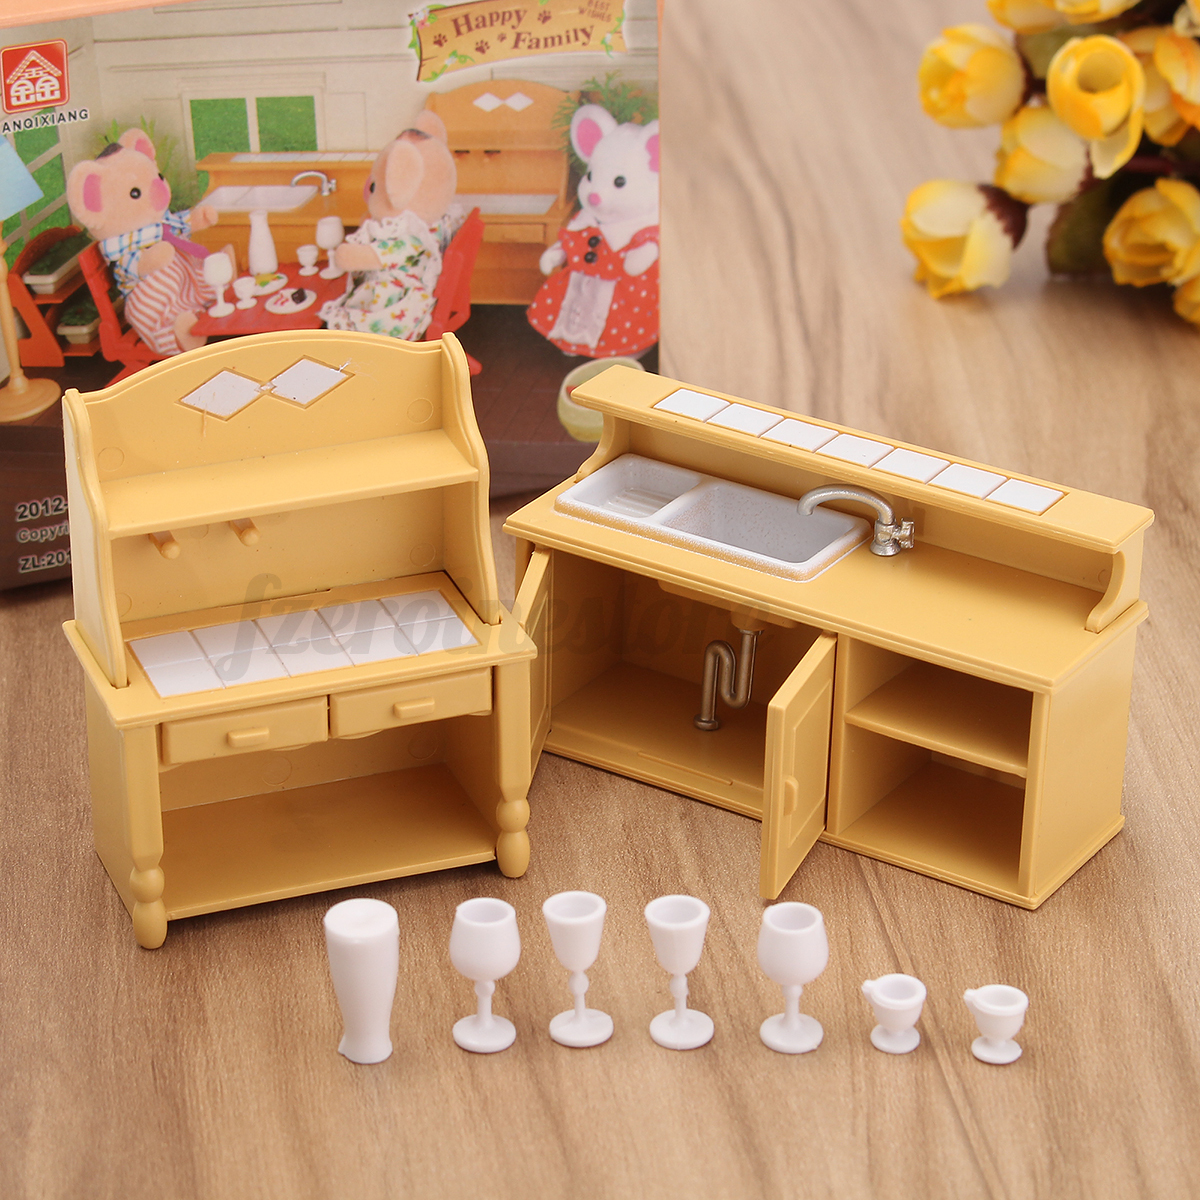 barbie furniture diy. 1-12-Doll-House-Barbie-Mini-Furniture-DIY- Barbie Furniture Diy